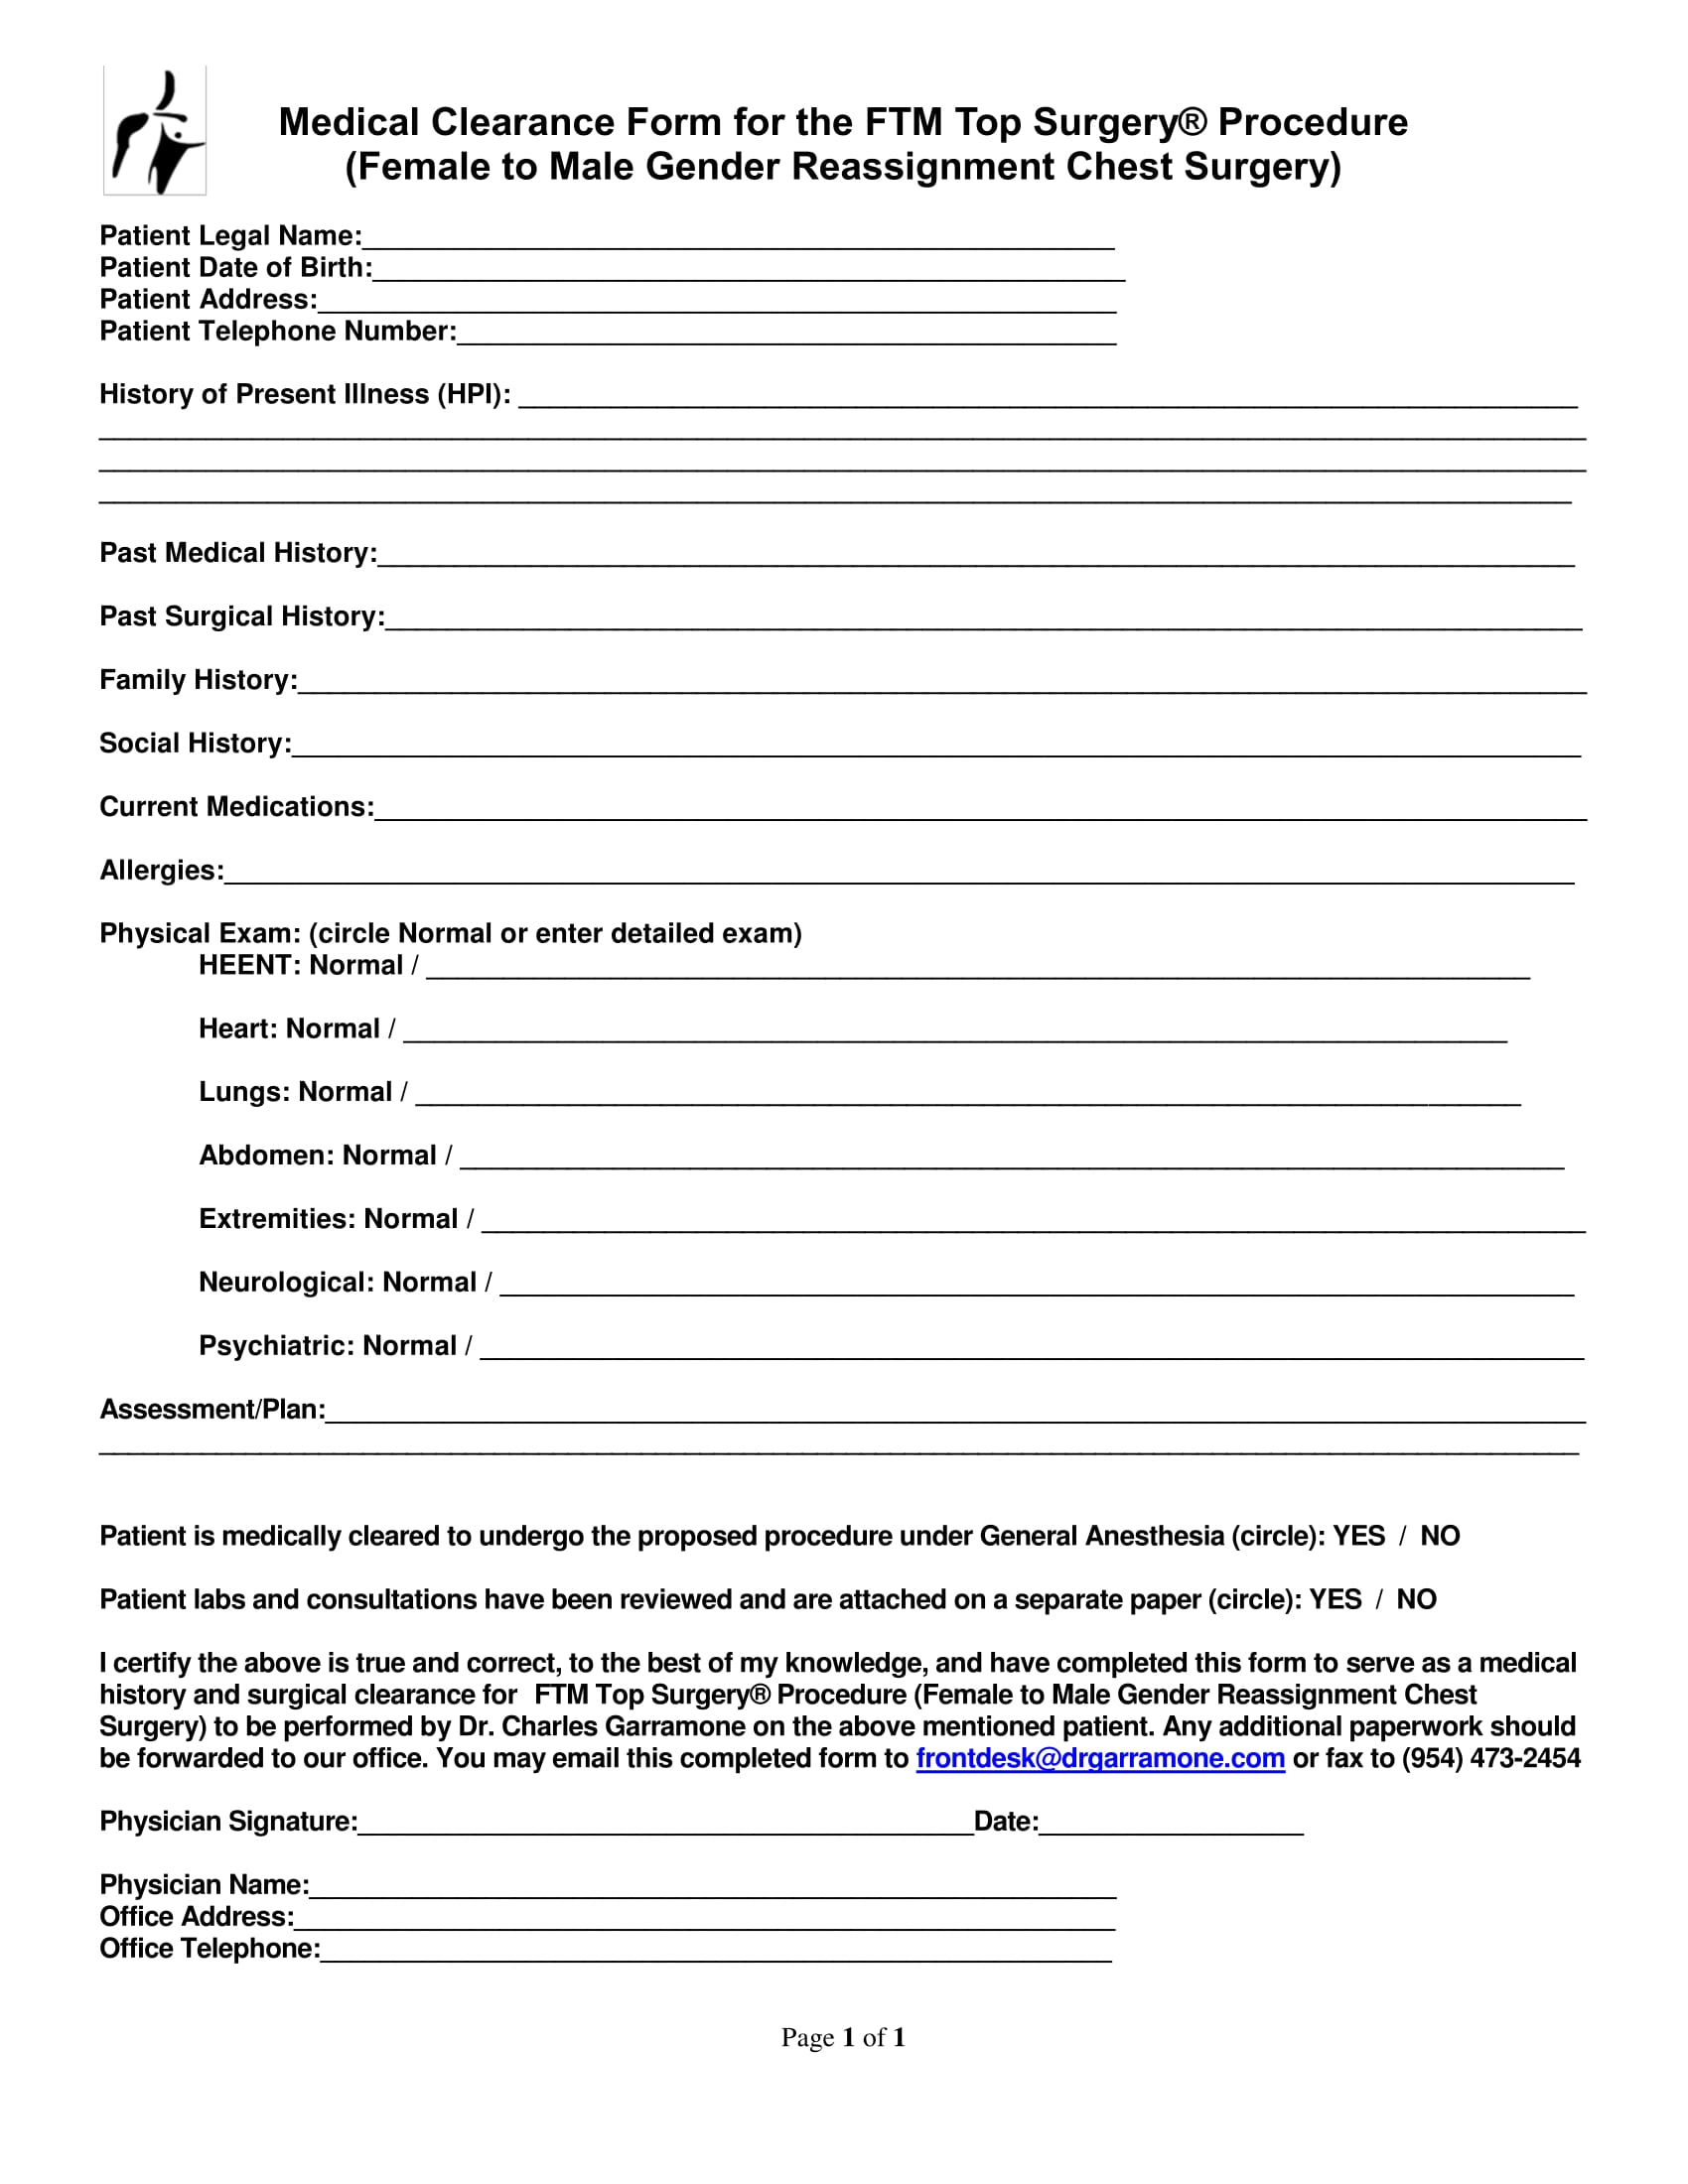 gender reassignment medical clearance form 1